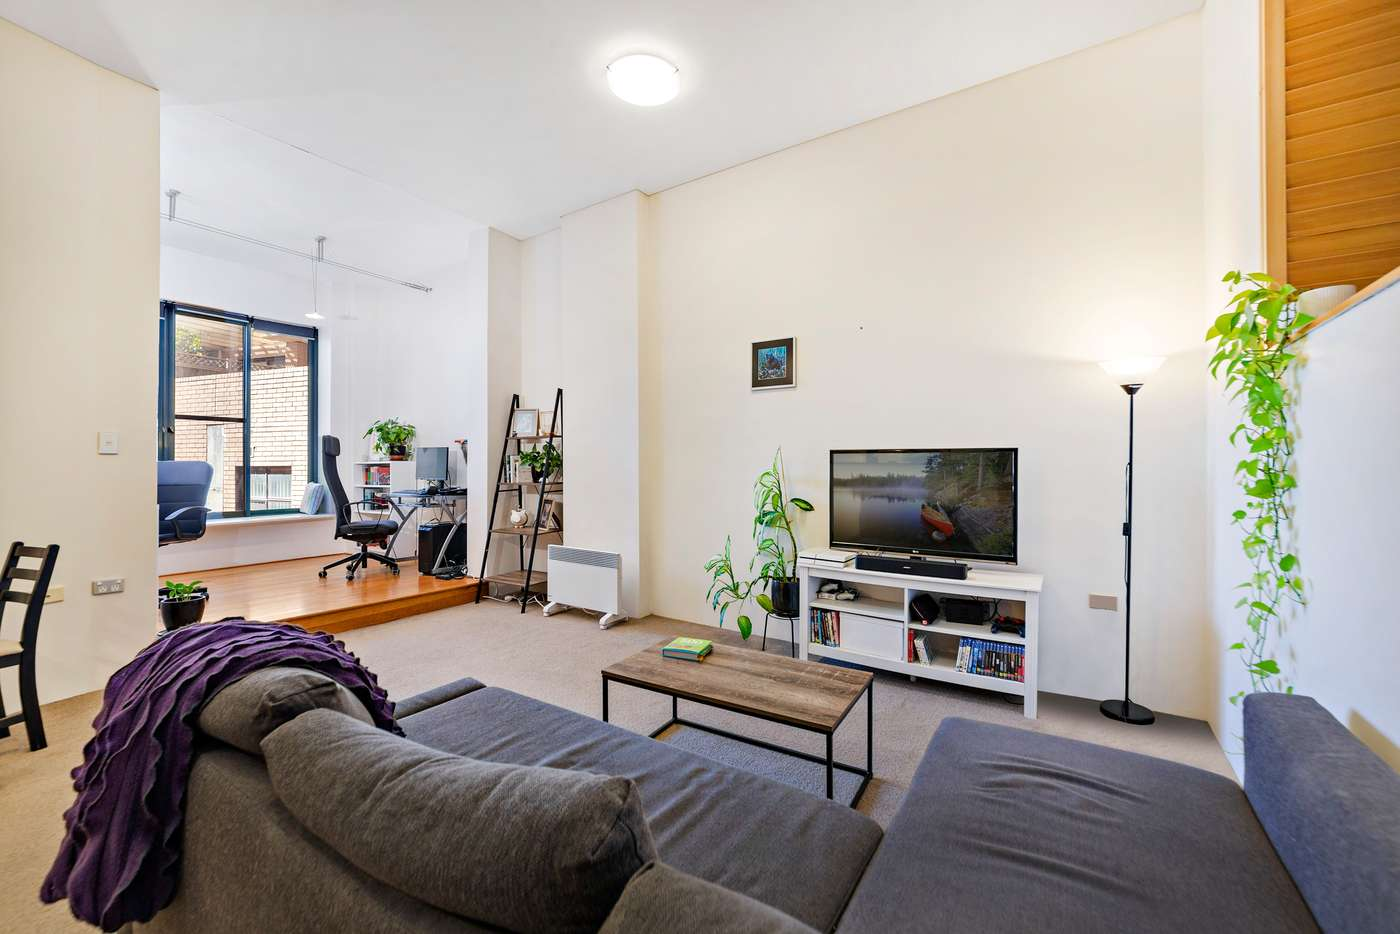 Main view of Homely apartment listing, 501/172 Riley Street, Darlinghurst NSW 2010